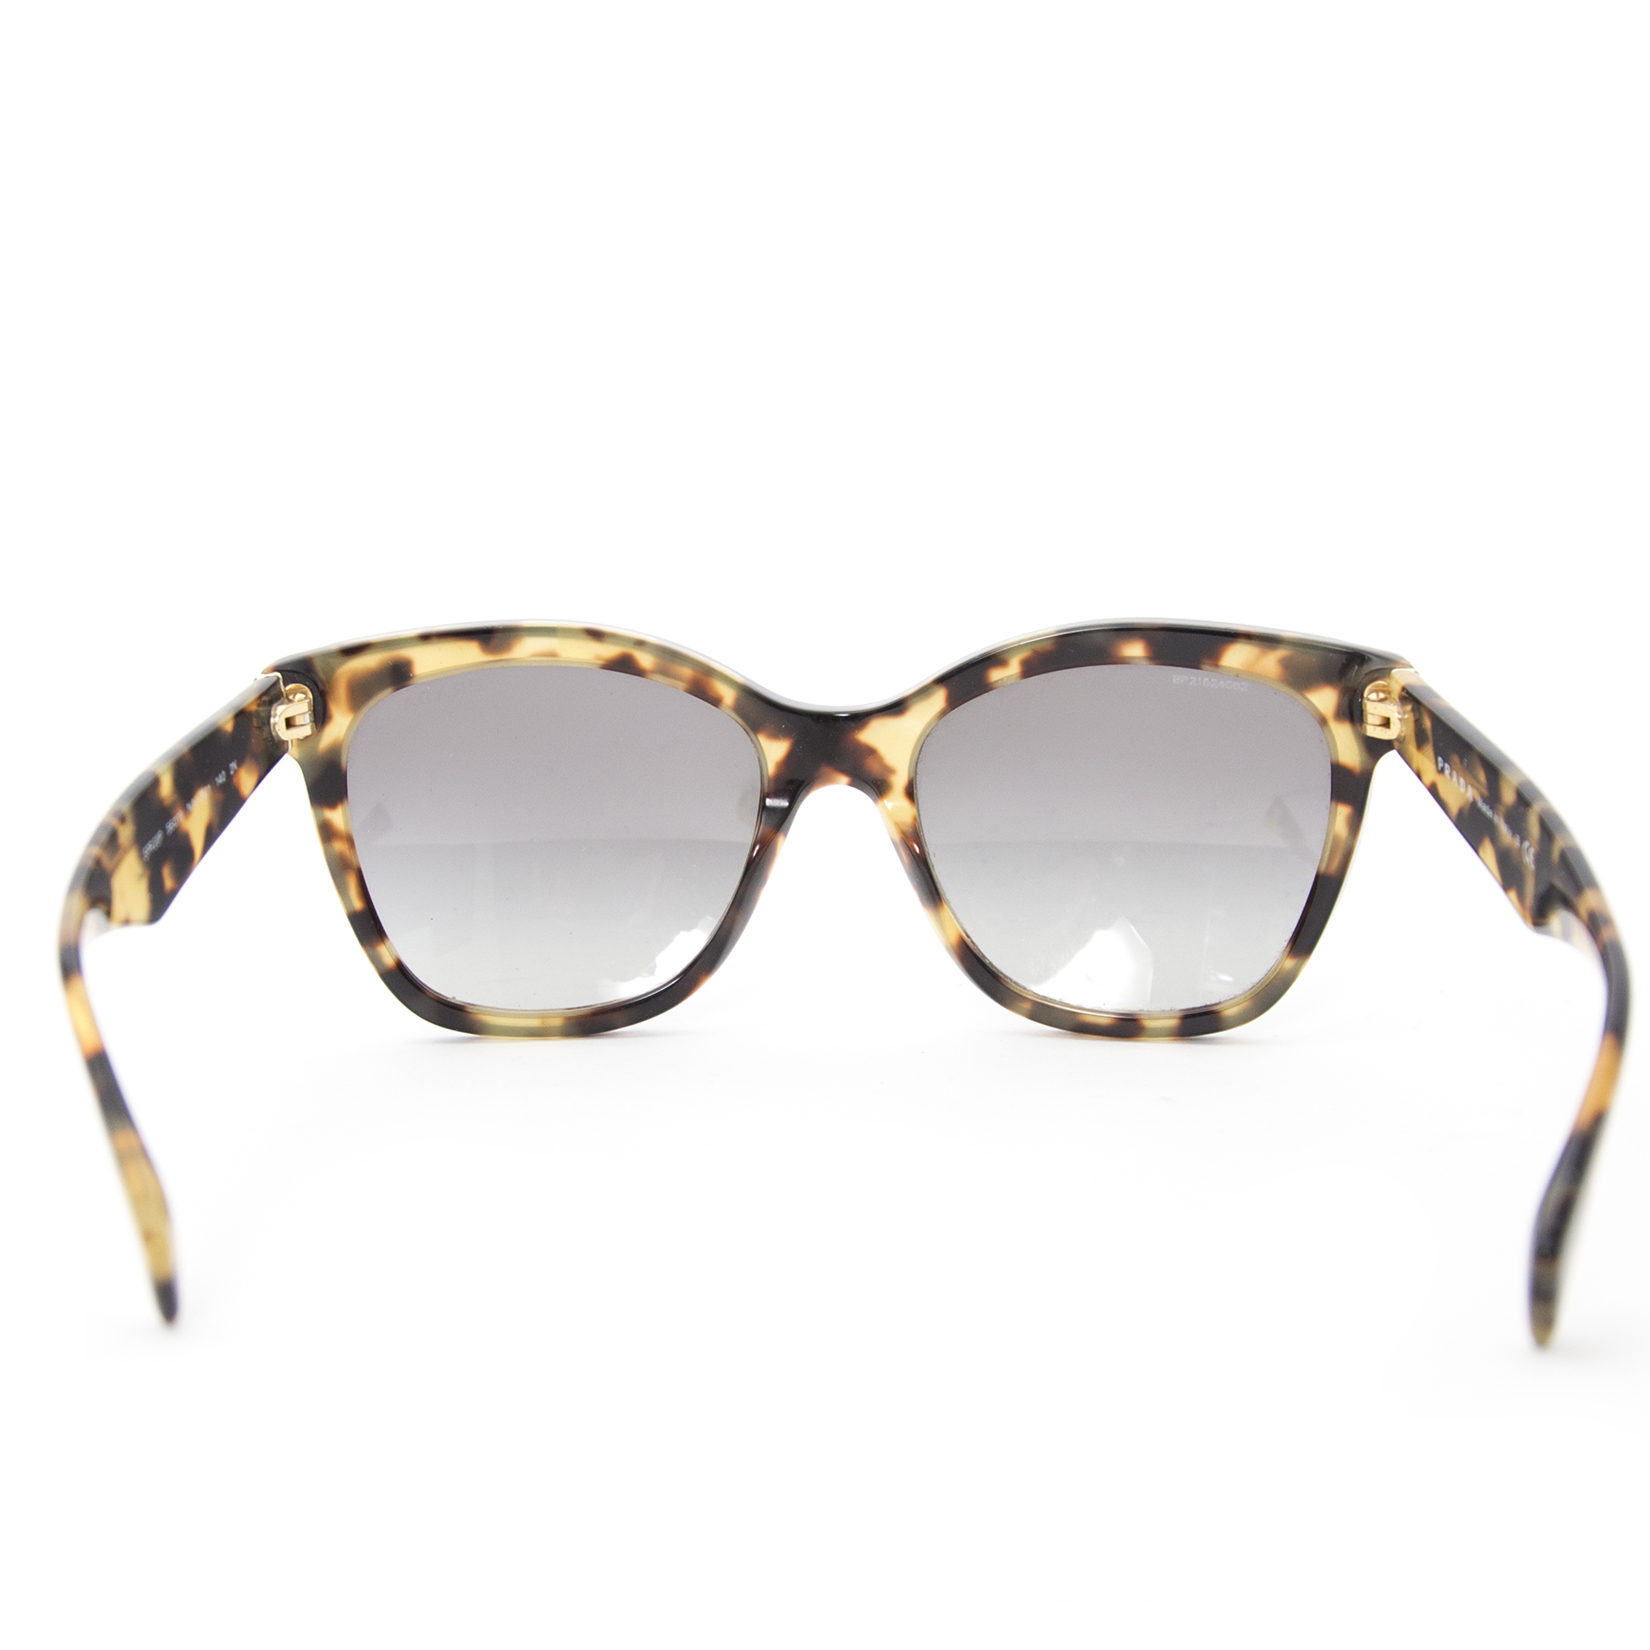 looking for a secondhand Prada Tortoise Sunglasses